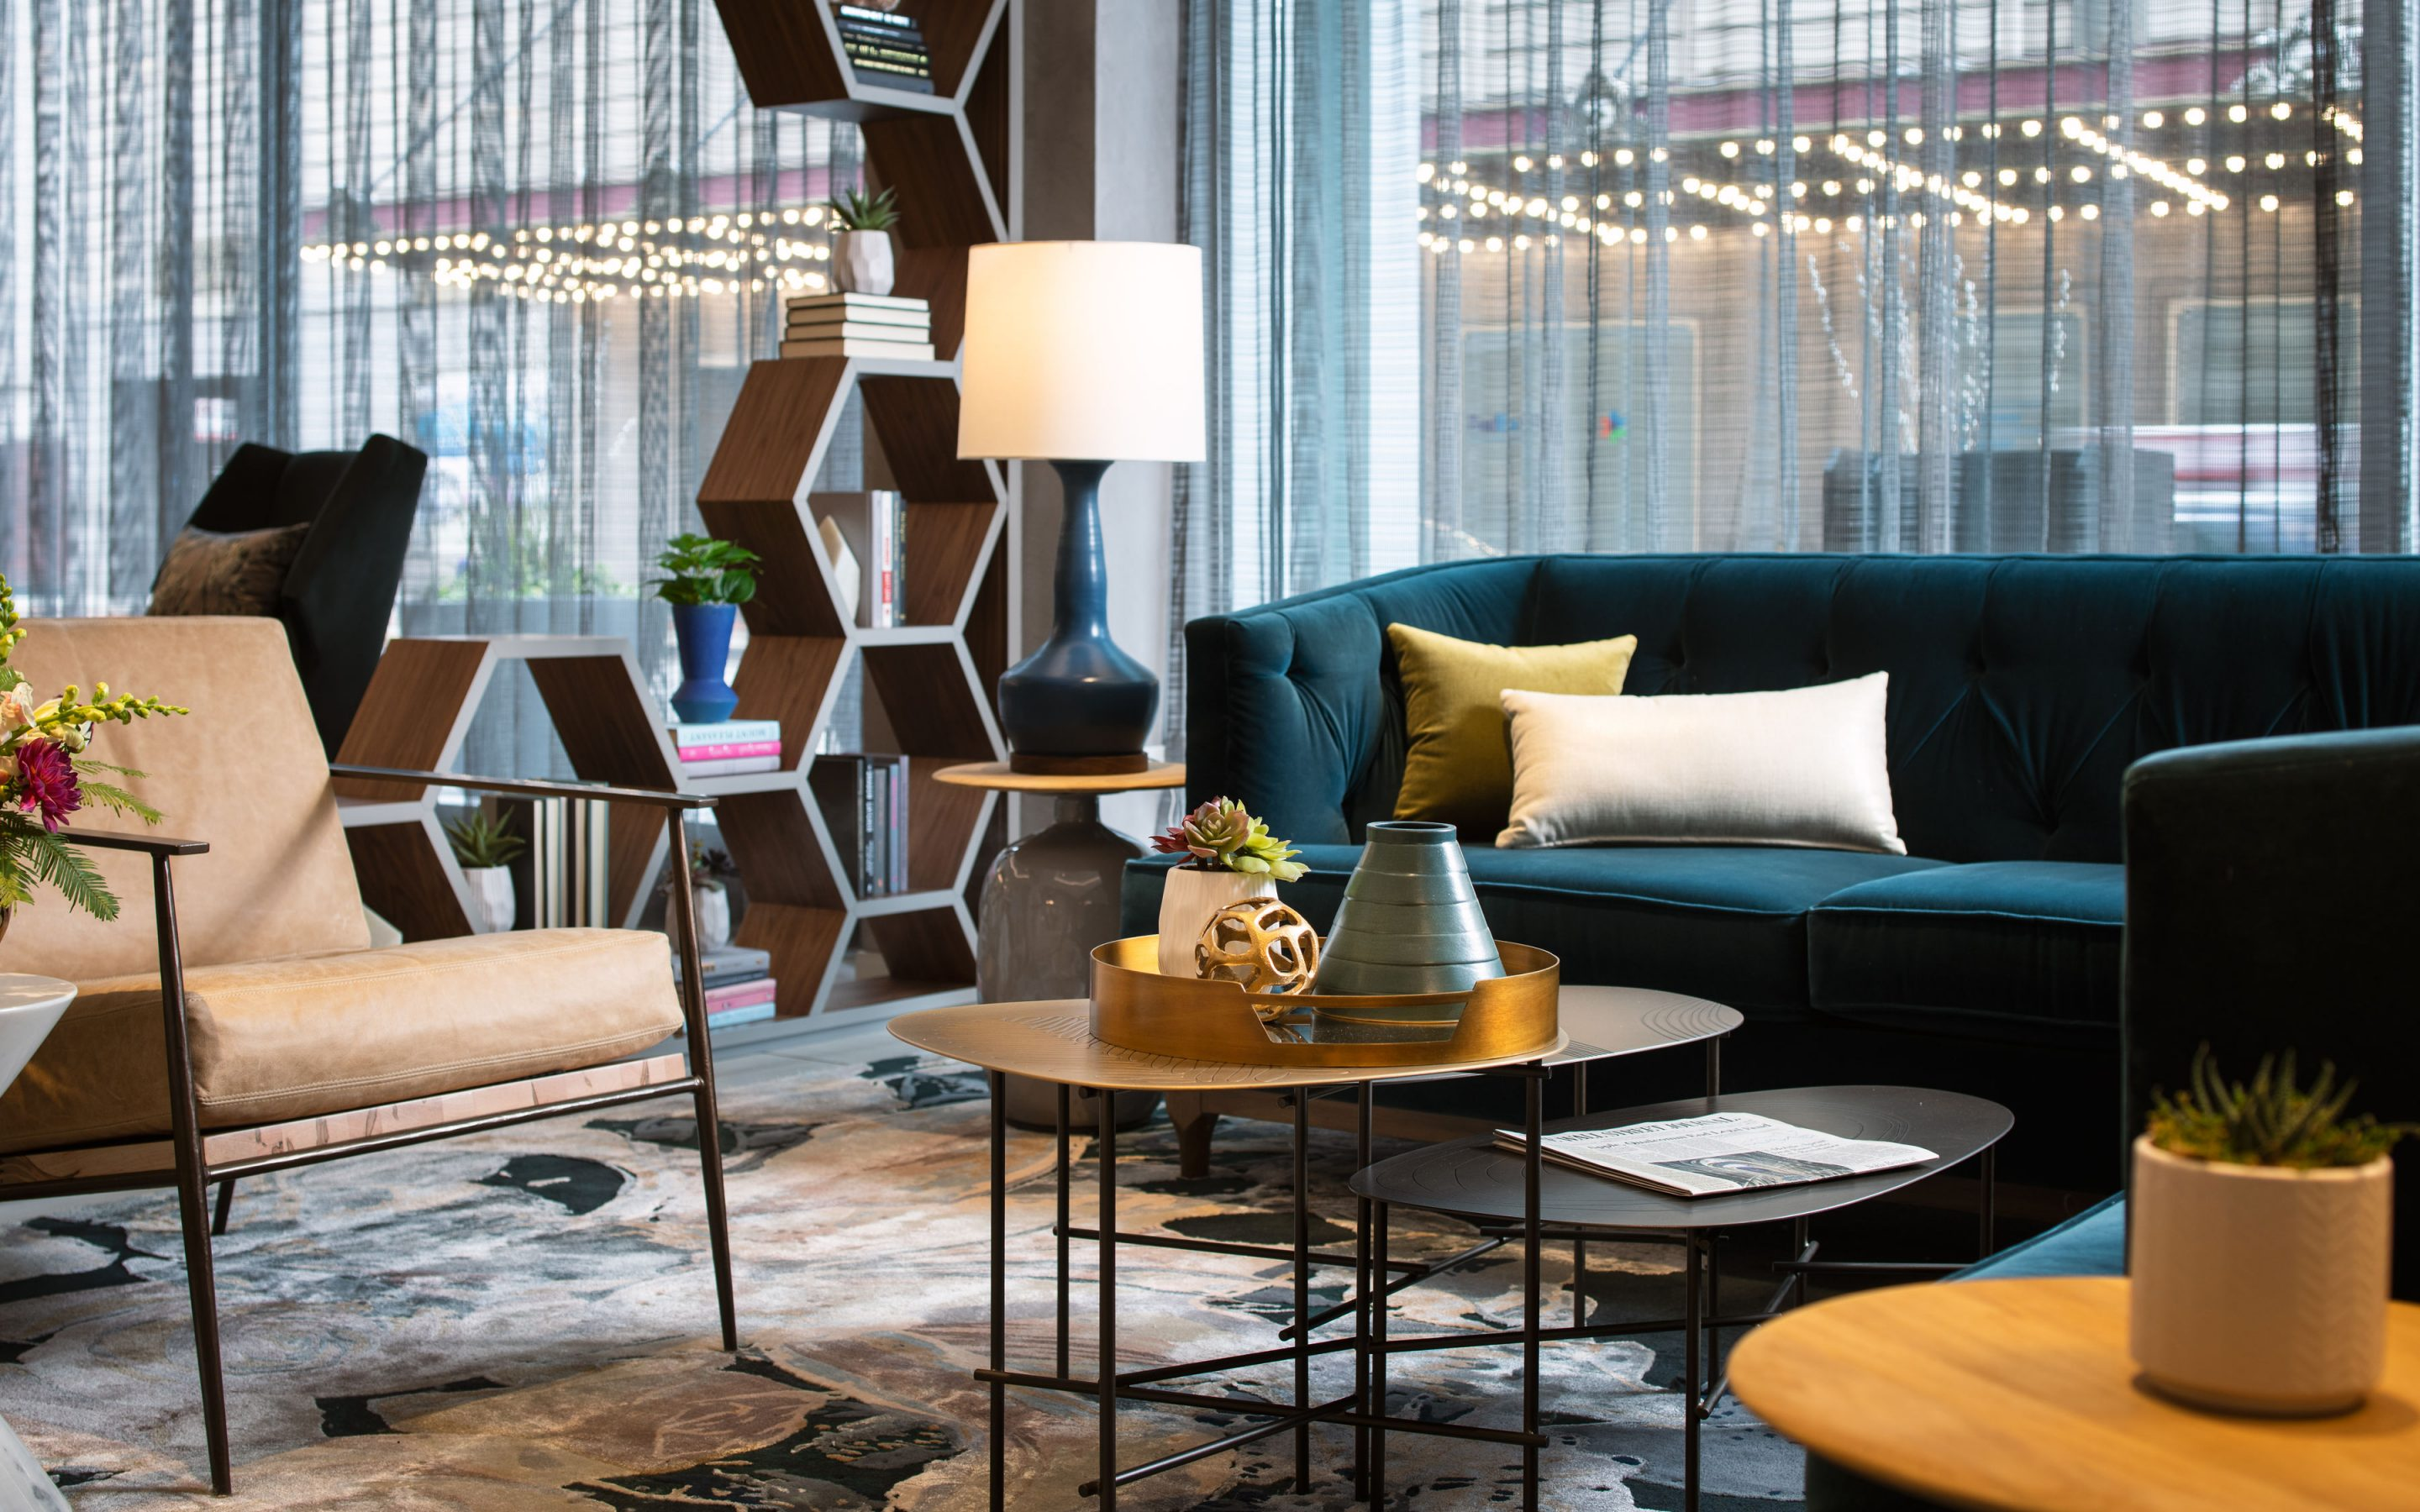 Design Interieur Hotel Hotel Design And Development Firm The Gettys Group